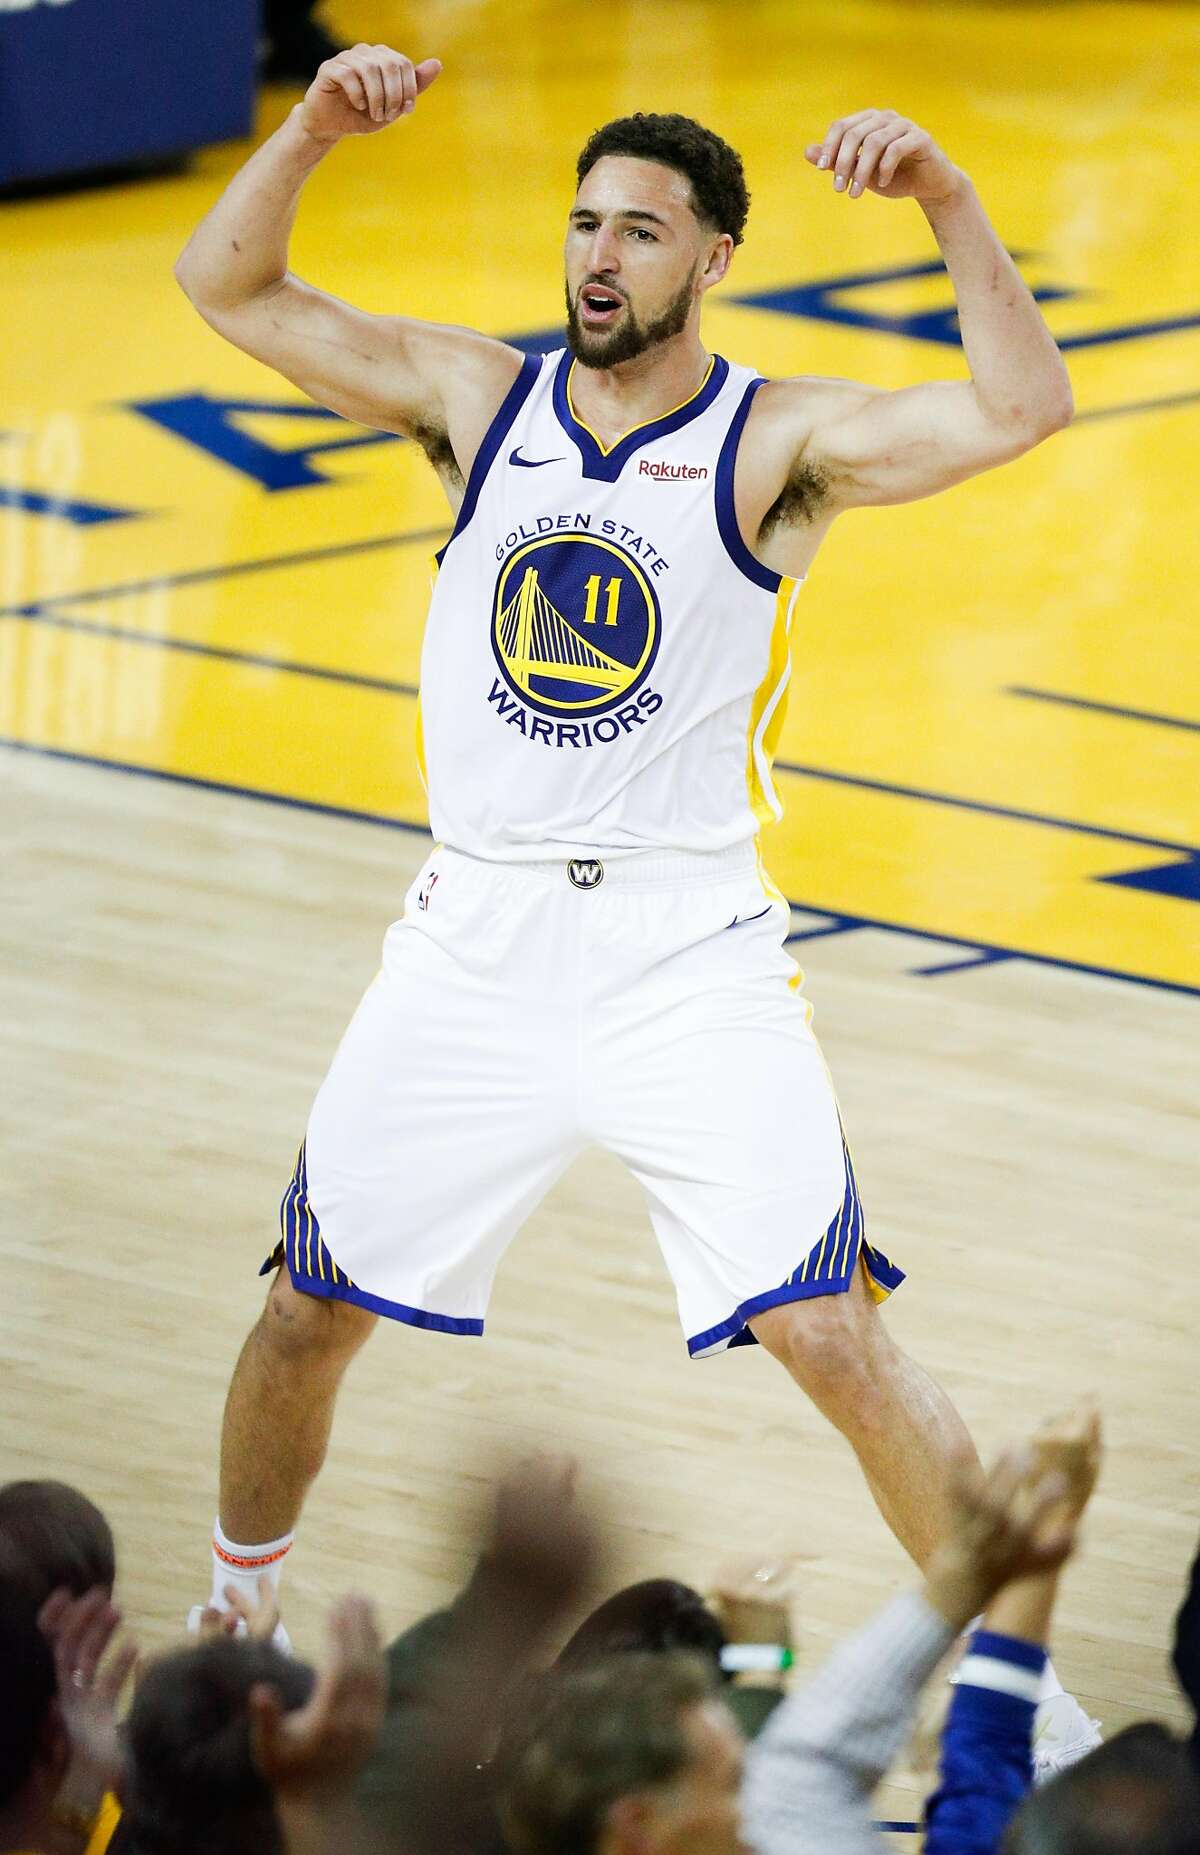 Golden State Warriors Klay Thompson reacts after dunking in the fourth quarter during game 1 of the Western Conference Finals between the Golden State Warriors and the Portland Trail Blazers at Oracle Arena on Tuesday, May 14, 2019 in Oakland, Calif.